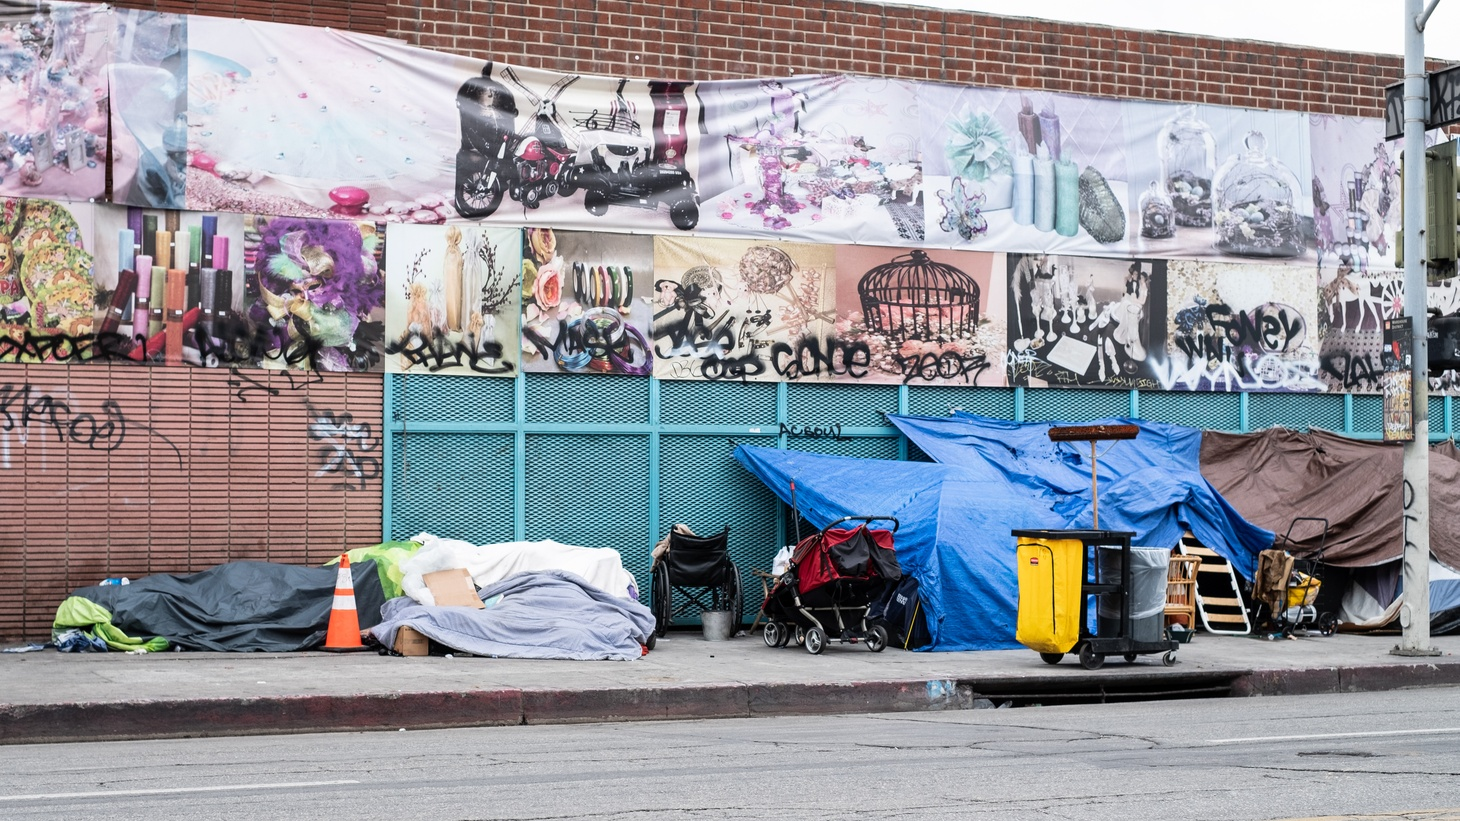 Hundreds of unhoused people have died across LA County this year.